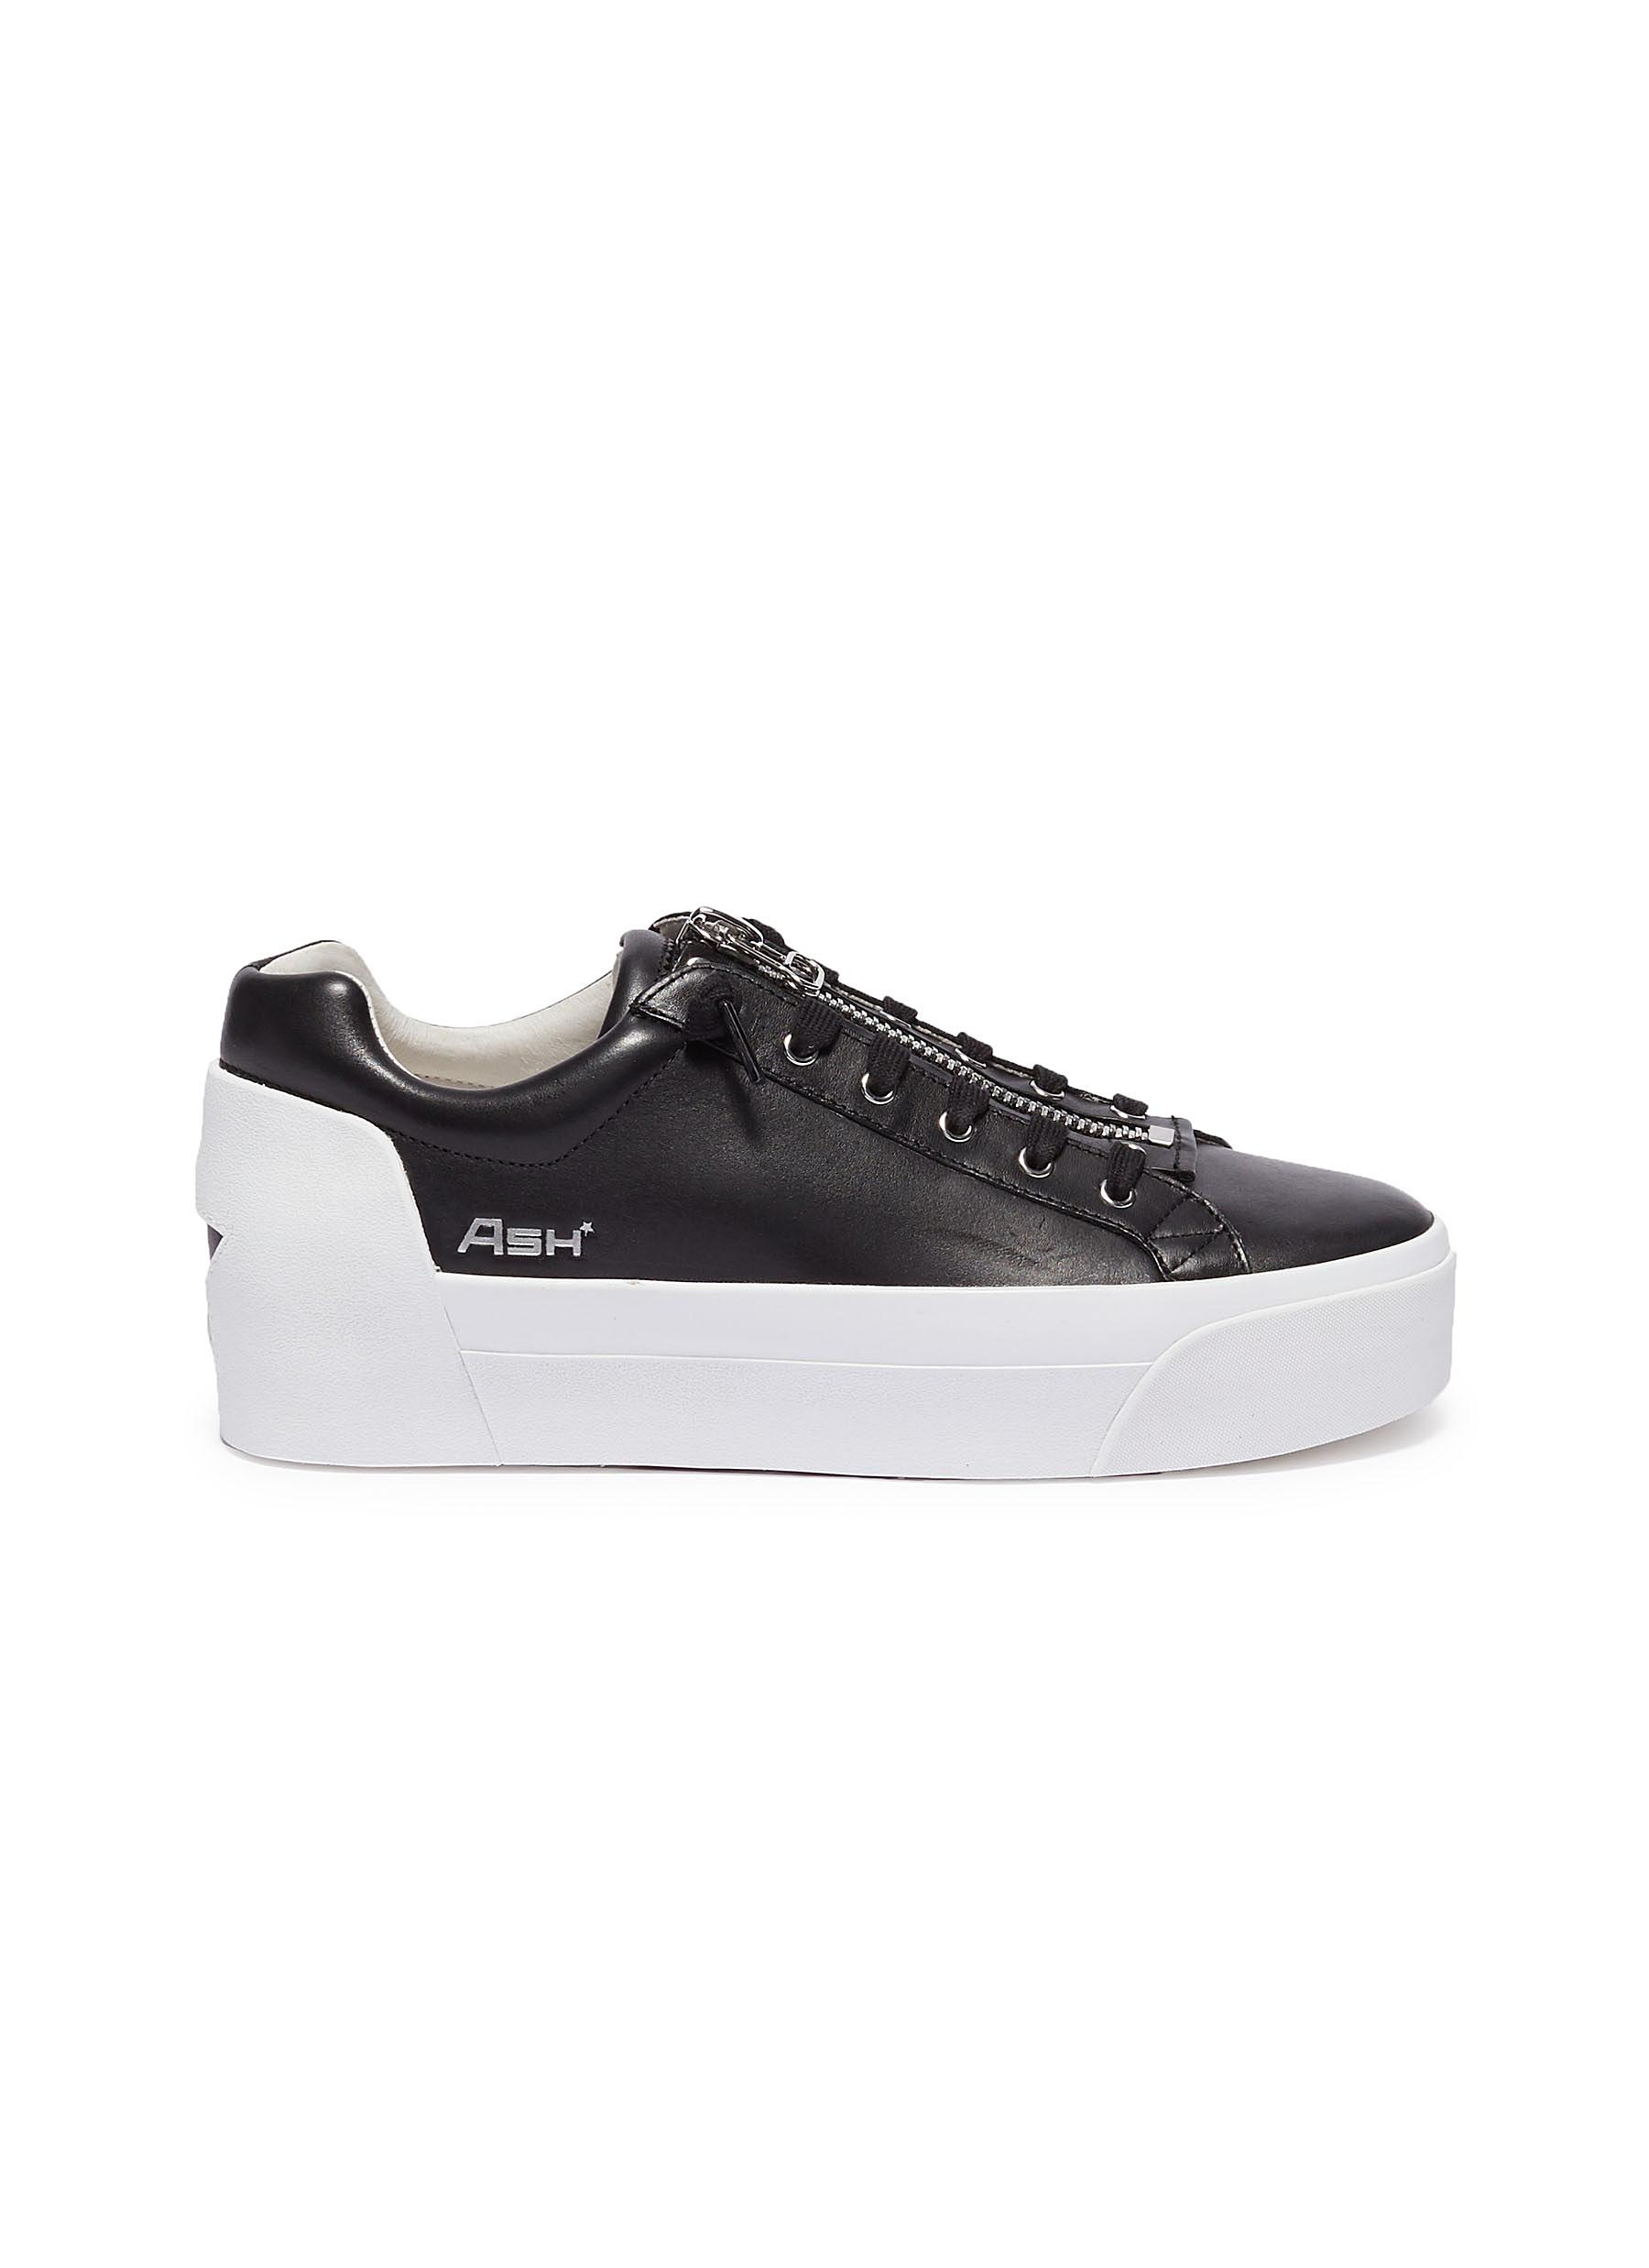 ef8ea8b86e8fe Main View - Click To Enlarge - ASH -  Buzz  zip leather platform sneakers